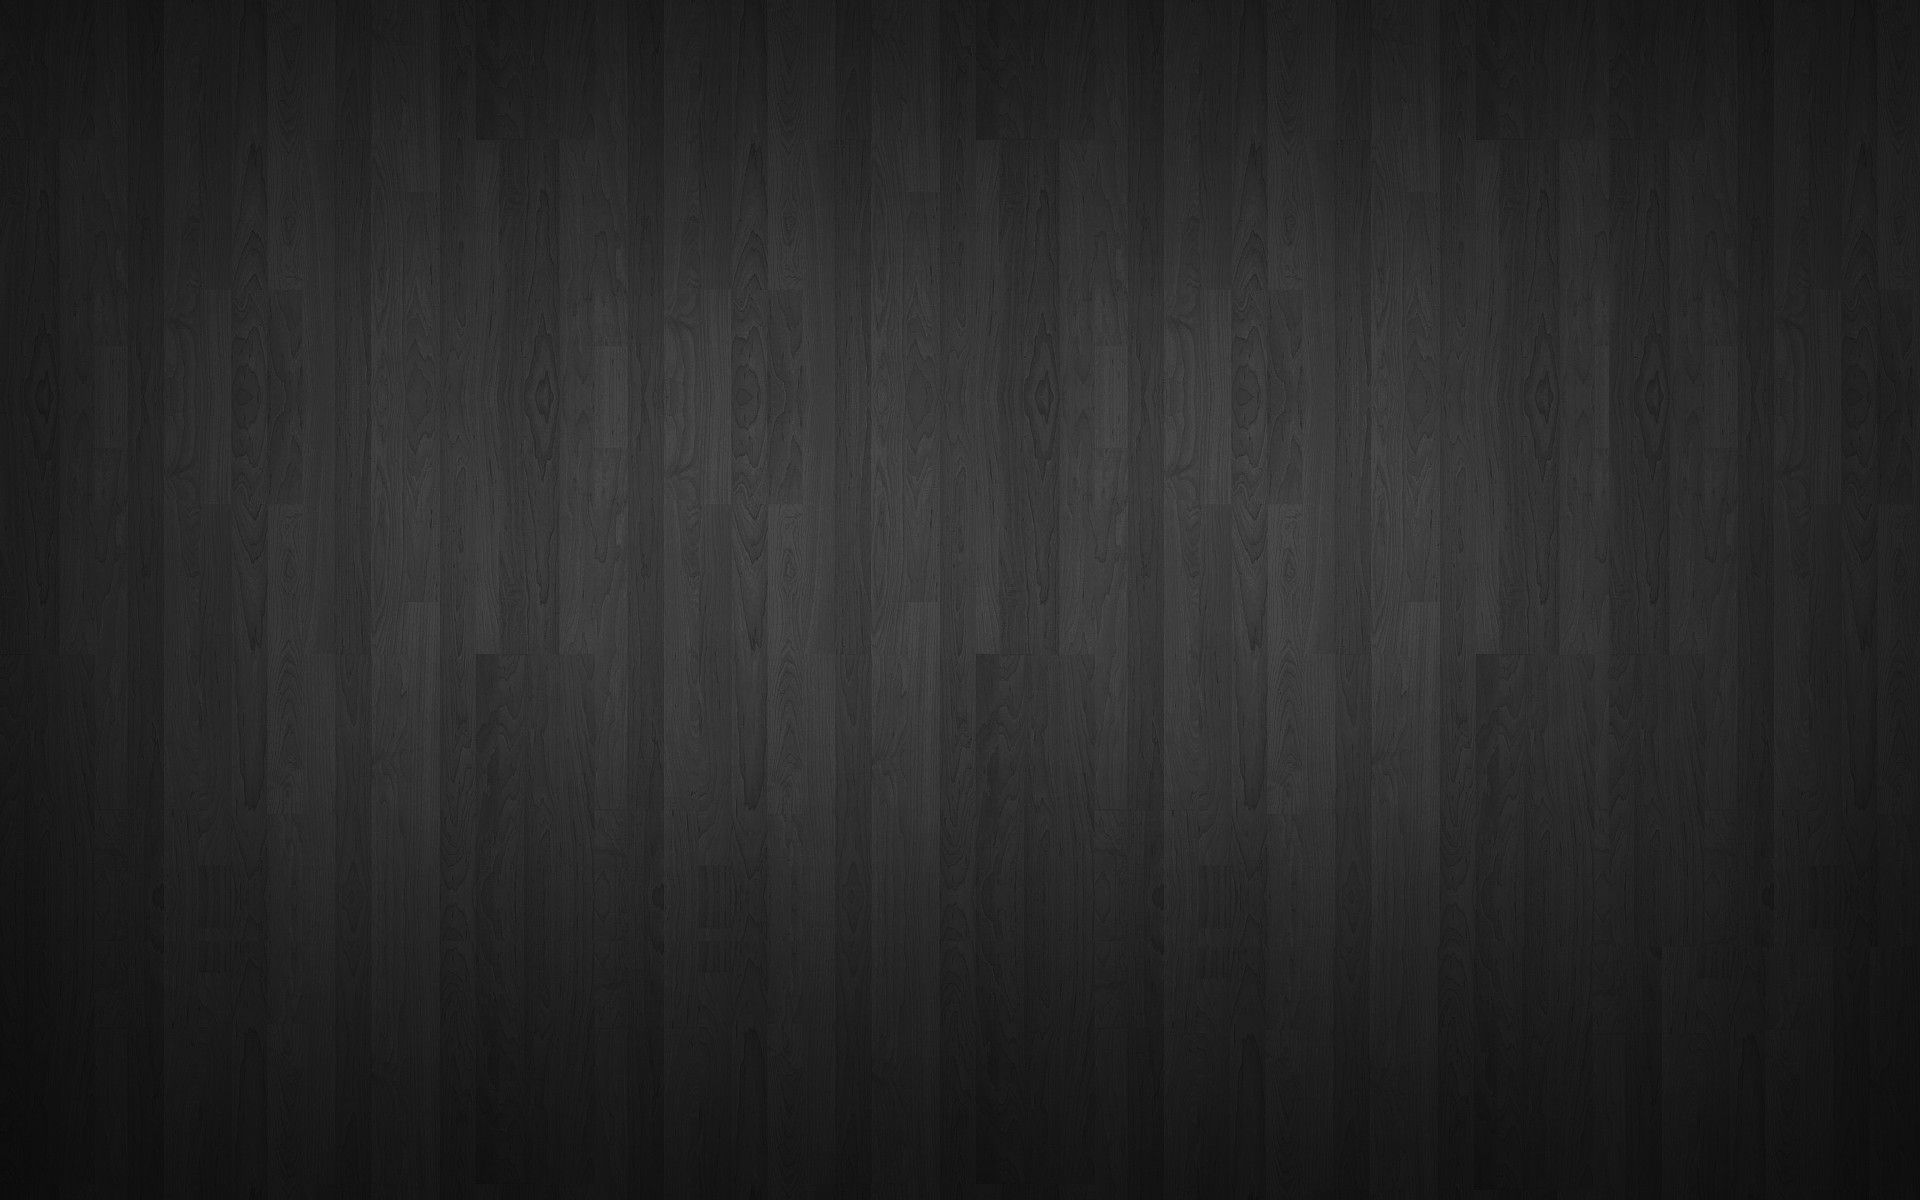 Plain-Black-Collection-1920%C3%971080-Plain-Adorable-wallpaper-wp3409847